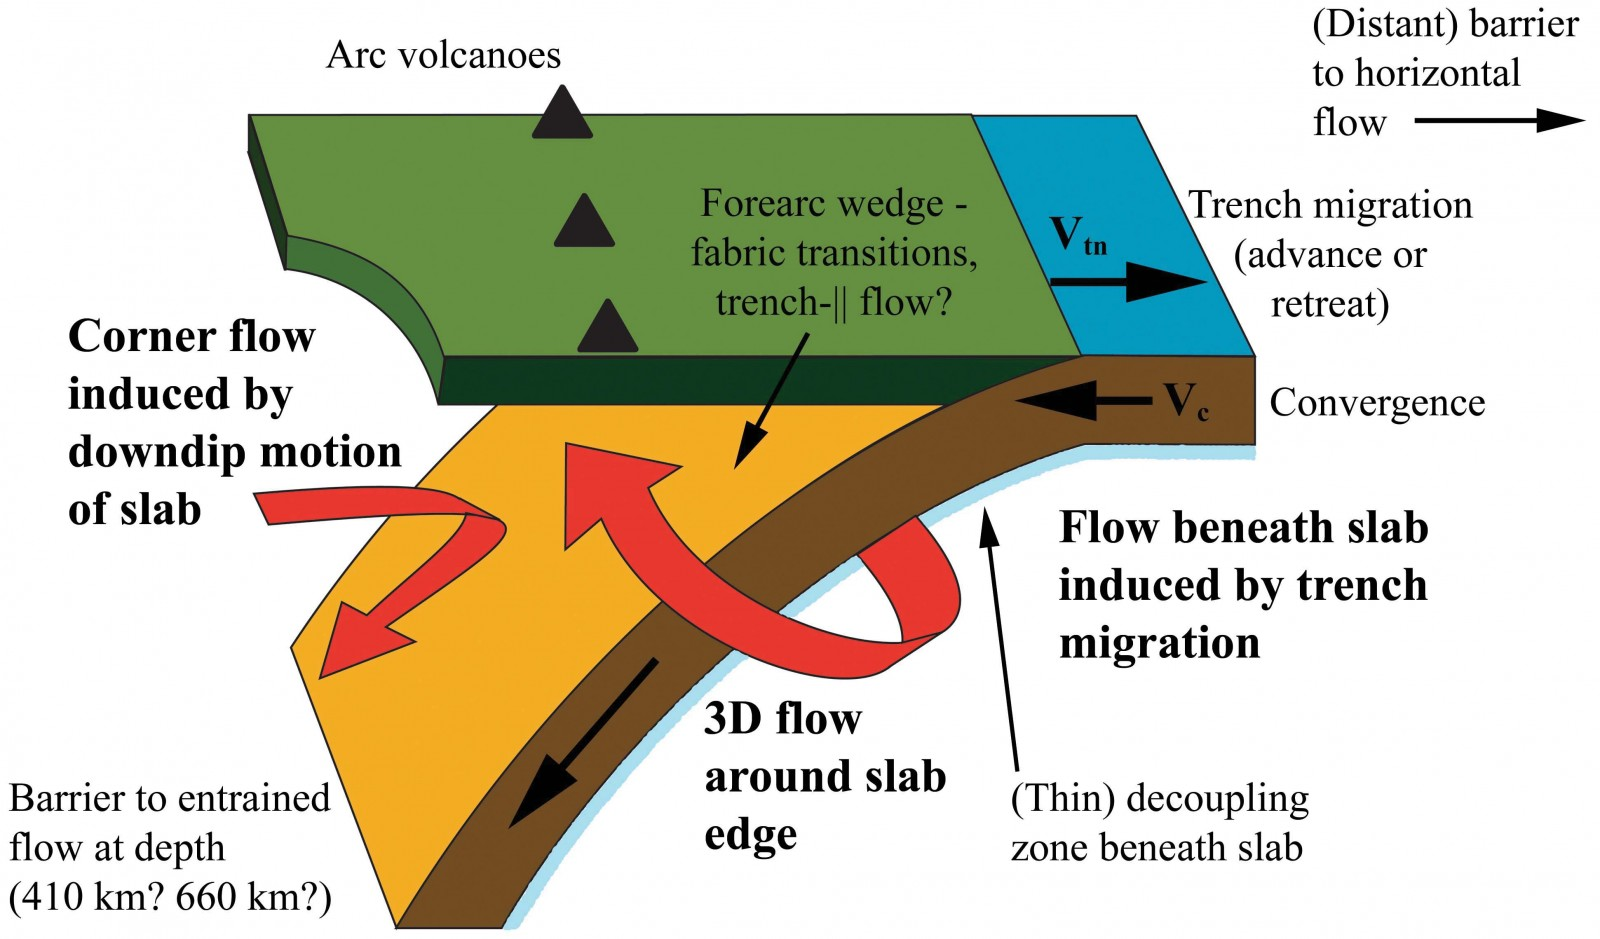 hight resolution of schematic diagram of a subduction zone showing the dominance of 3d flow beneath the slab and the competing influence of 2d and 3d flow fields in the mantle